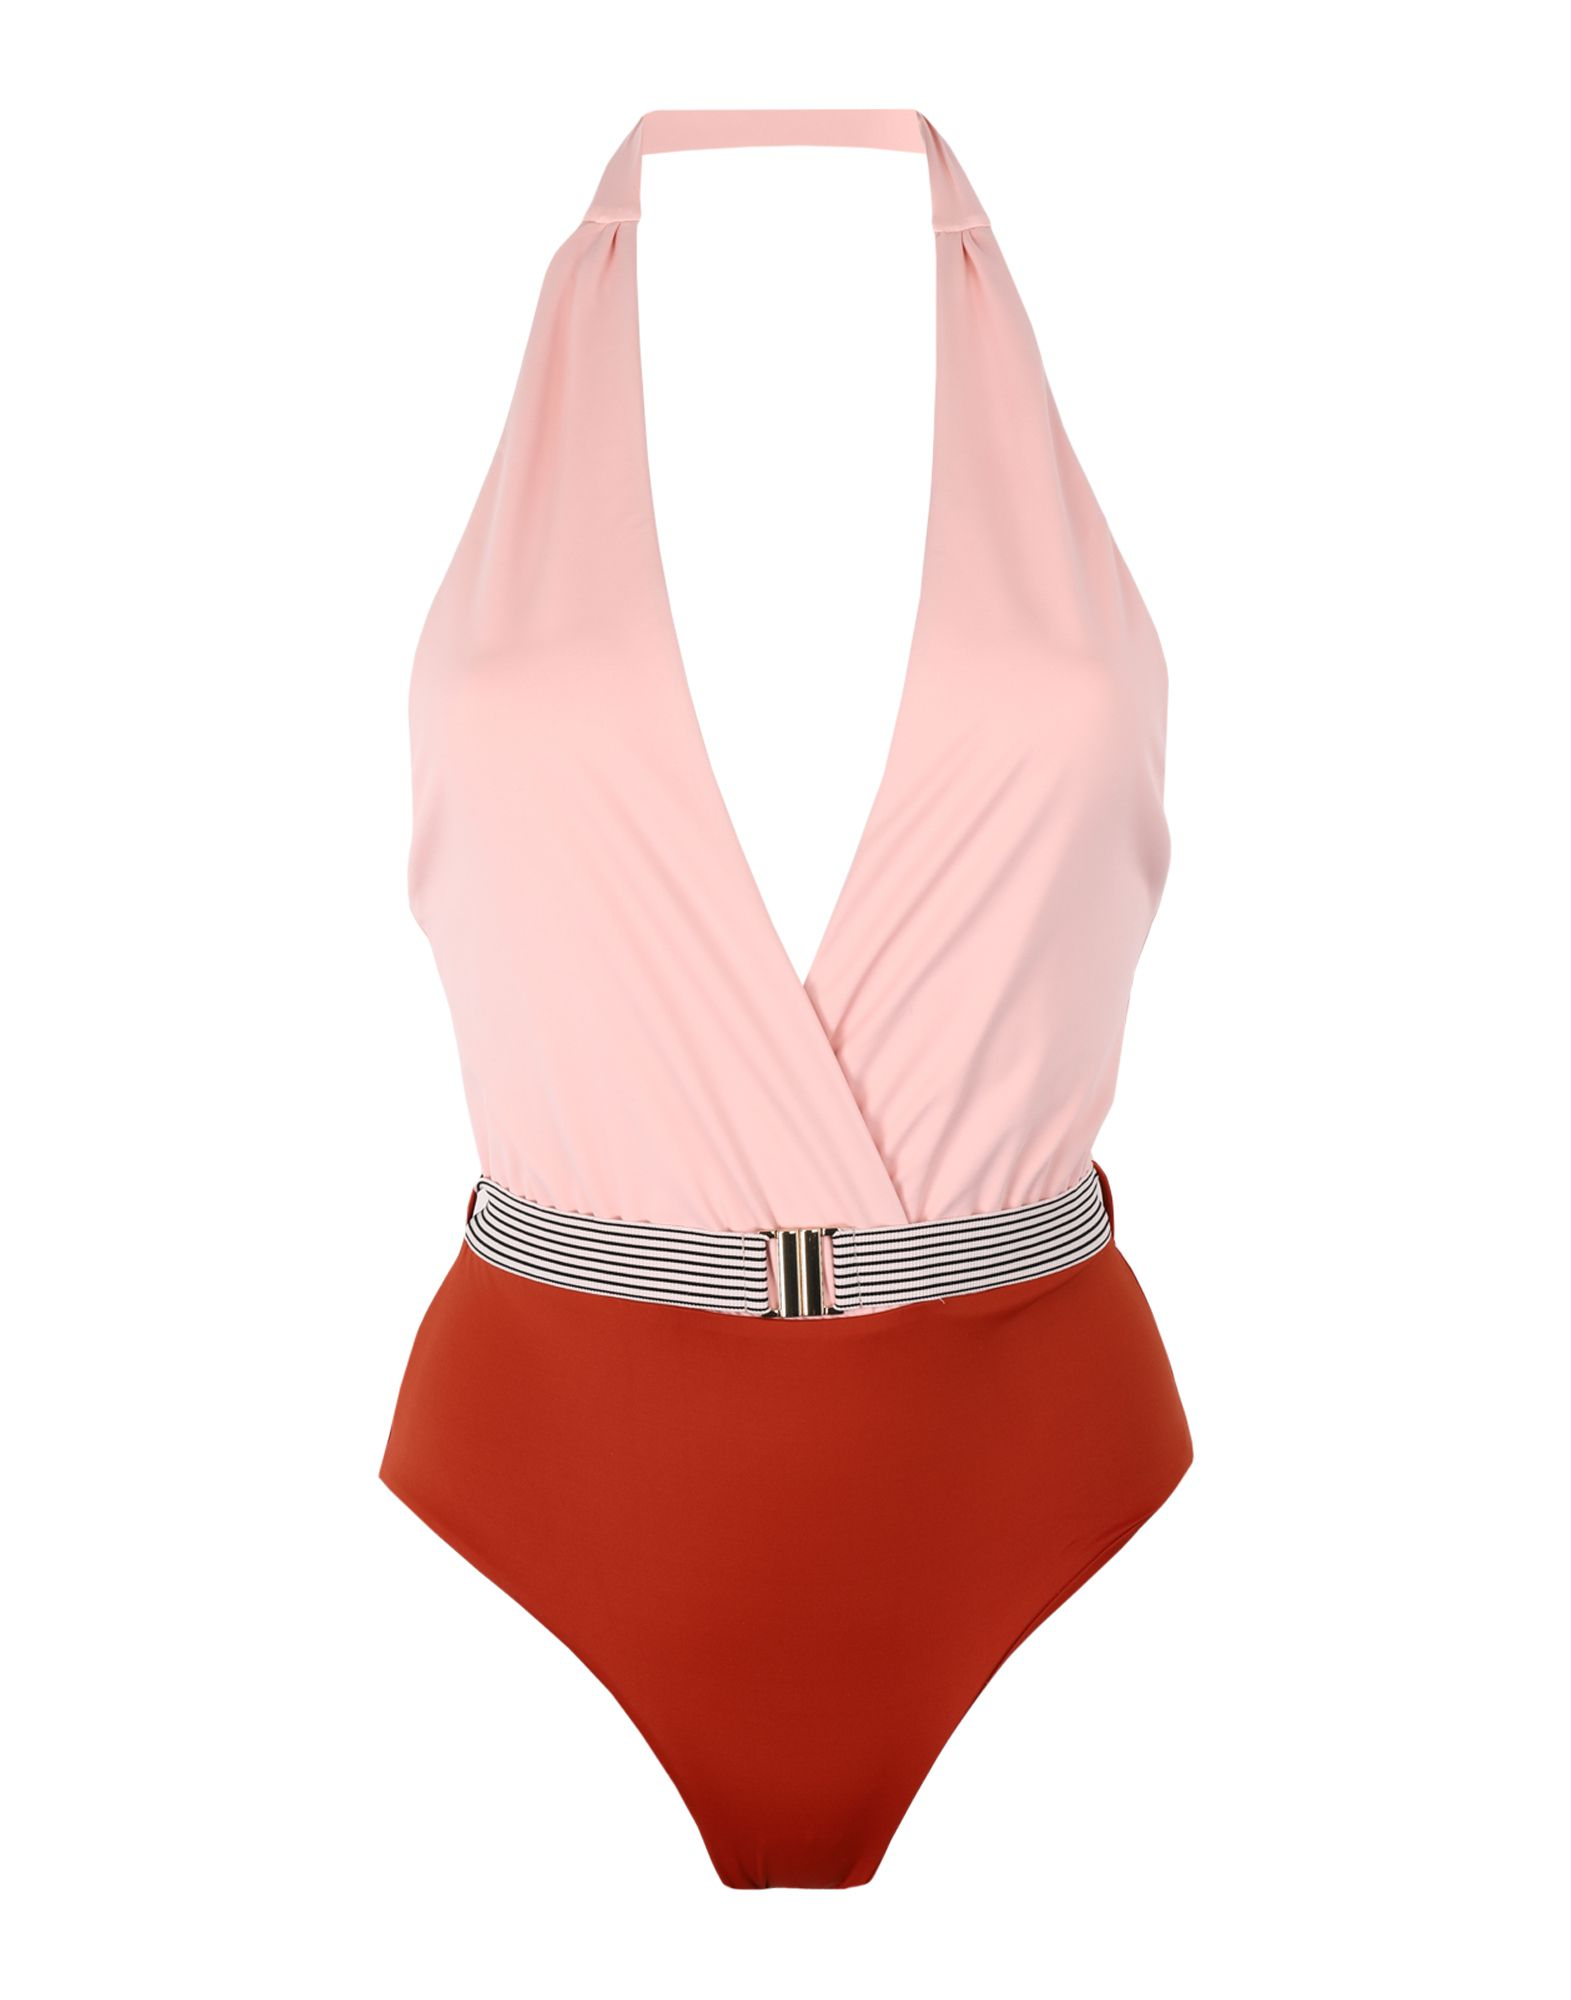 7af5528b57141 Women's swimwear, designer swimsuits for beach and pool on sale | YOOX